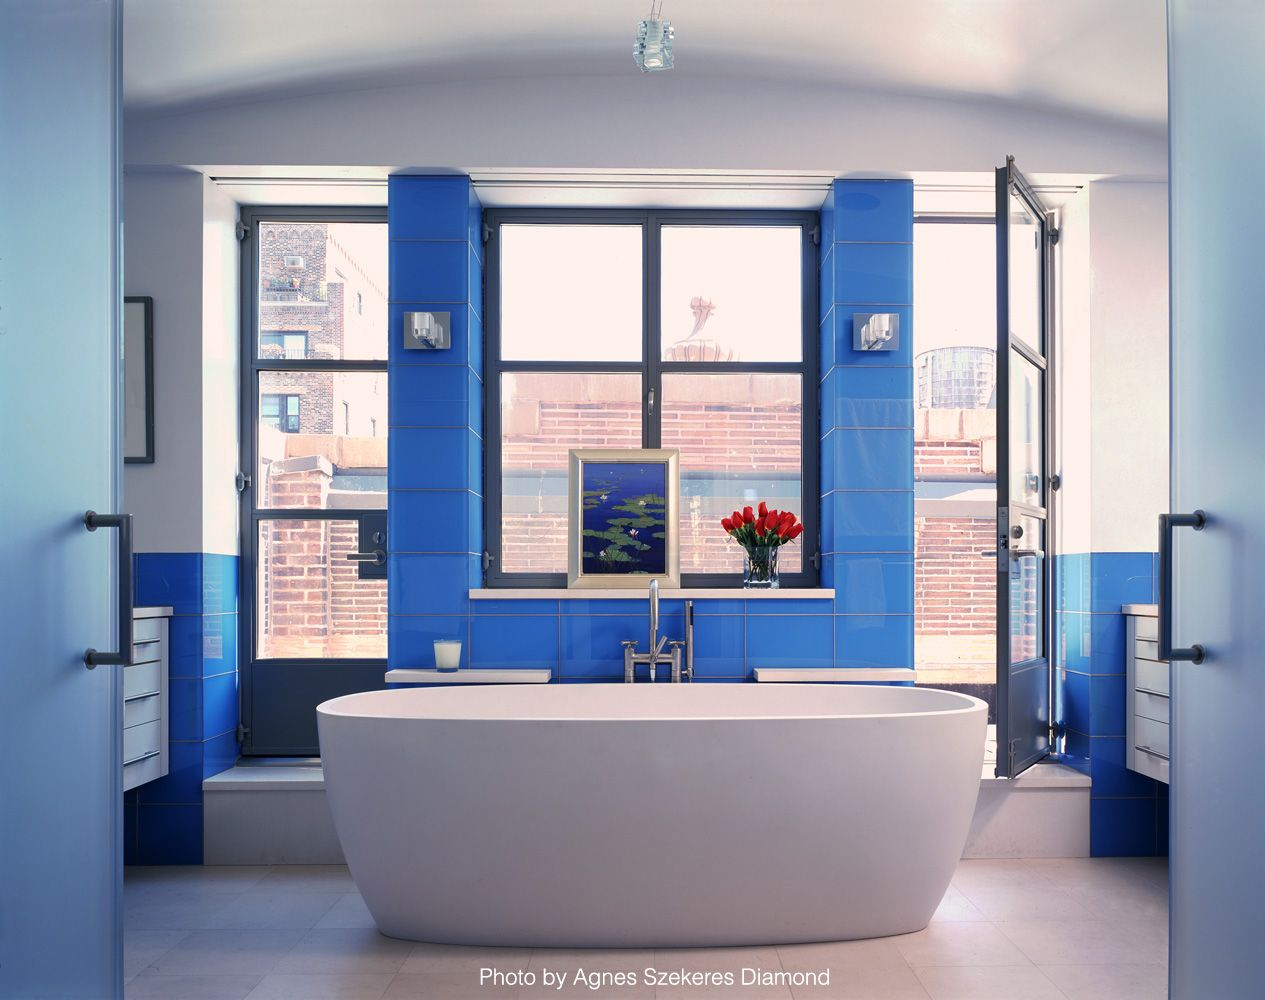 Images Photos The freestanding tub is being the norm in all remodeled bathrooms The blue walls and